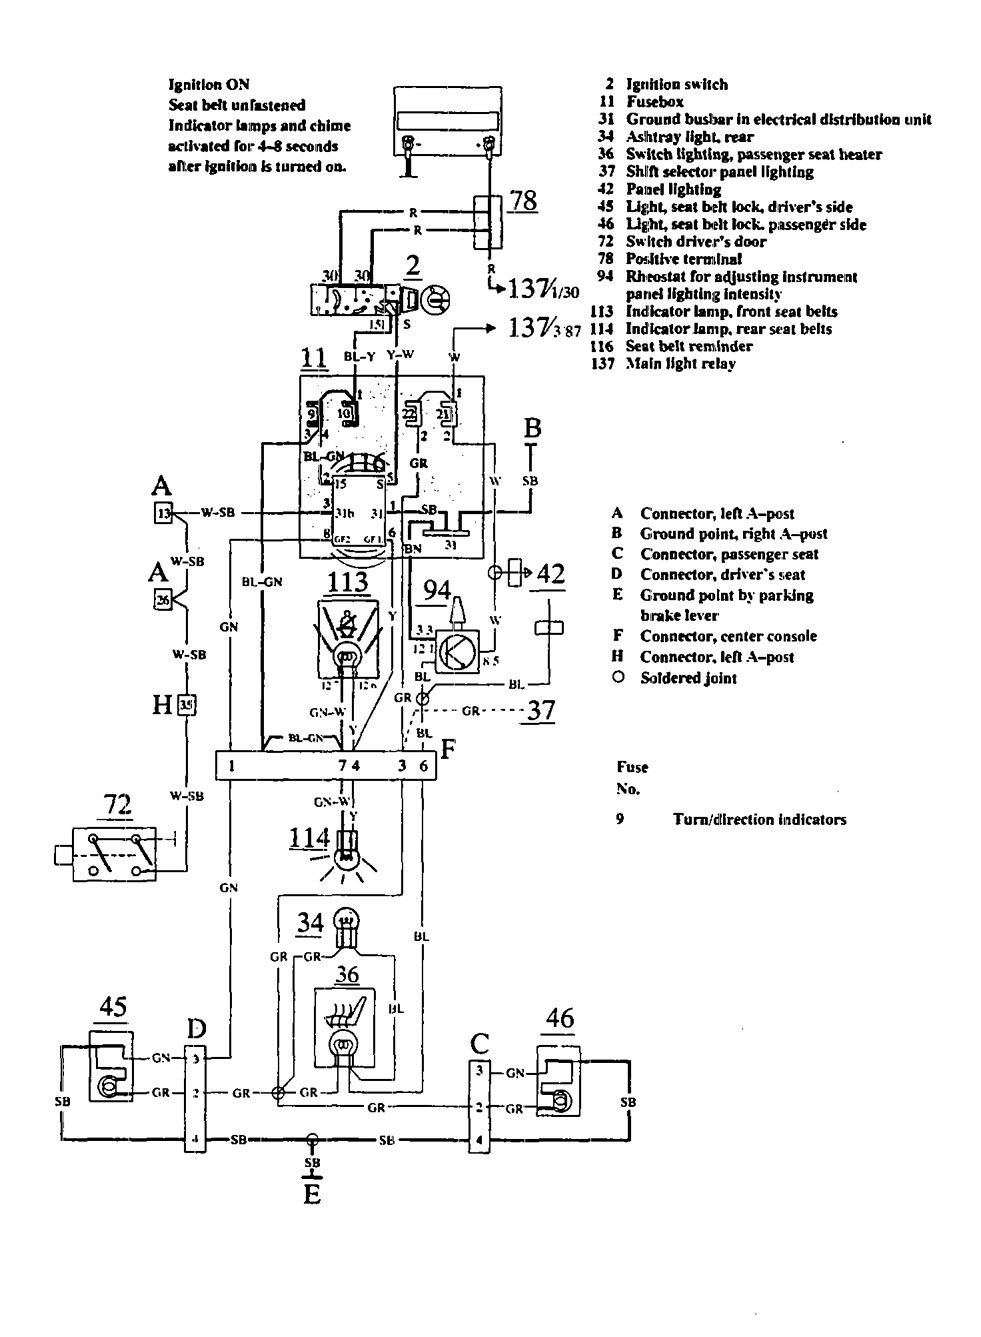 hight resolution of tlr200 wiring diagram wiring diagram will be a thing honda tl125 honda tlr200 reflex wiring diagram